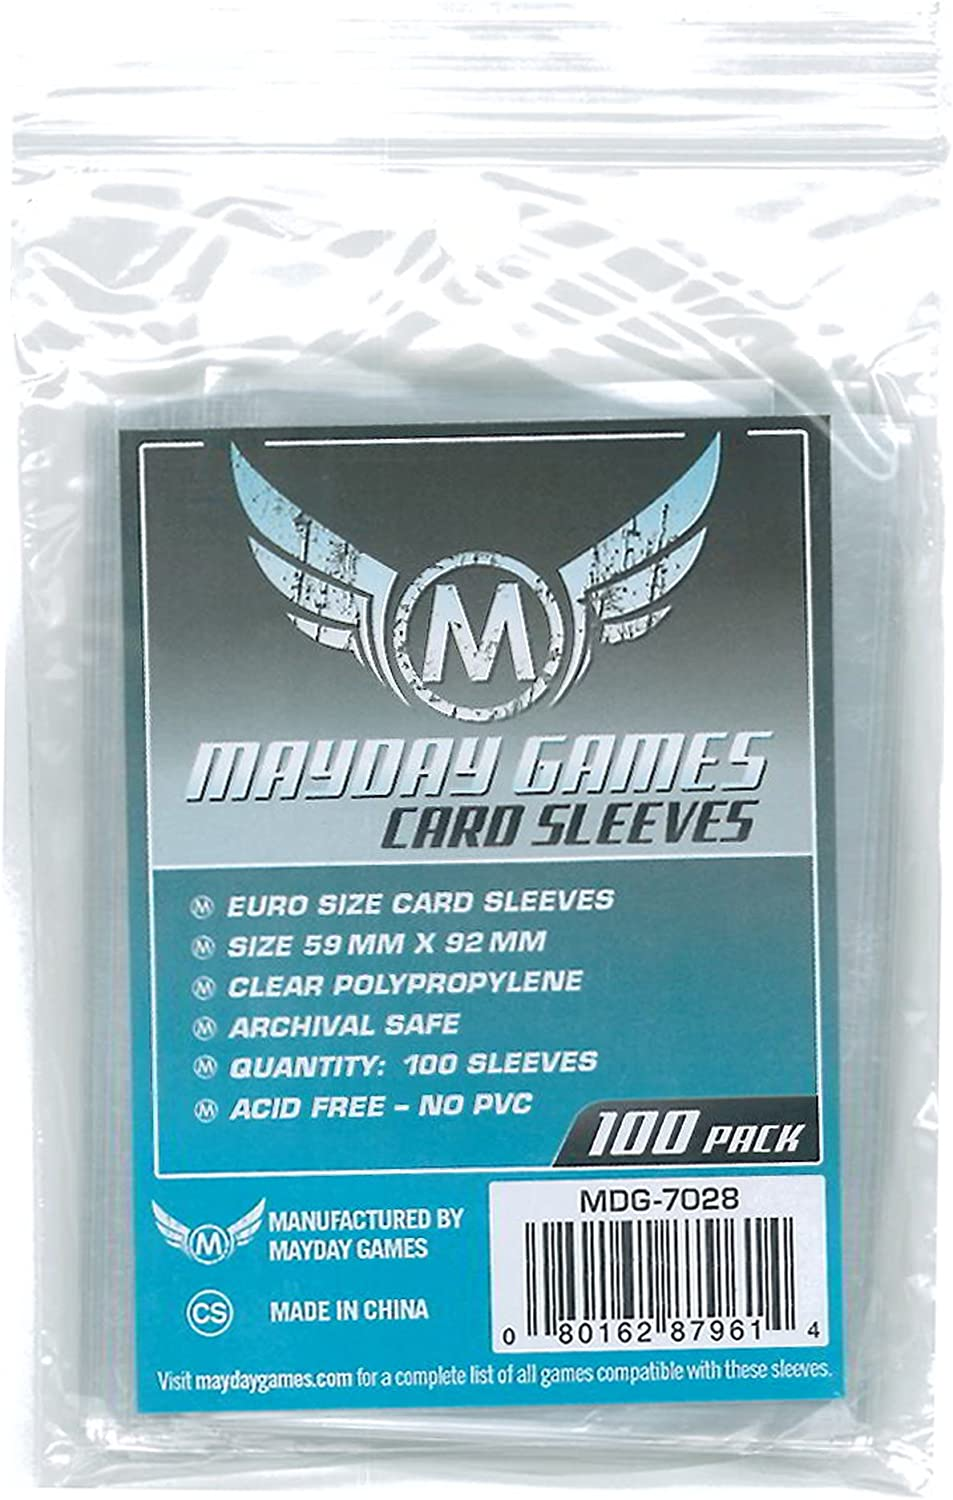 100 MDG7028 Mayday Games Inc Sleeves Euro Card Sleeves 59mm x 92mm